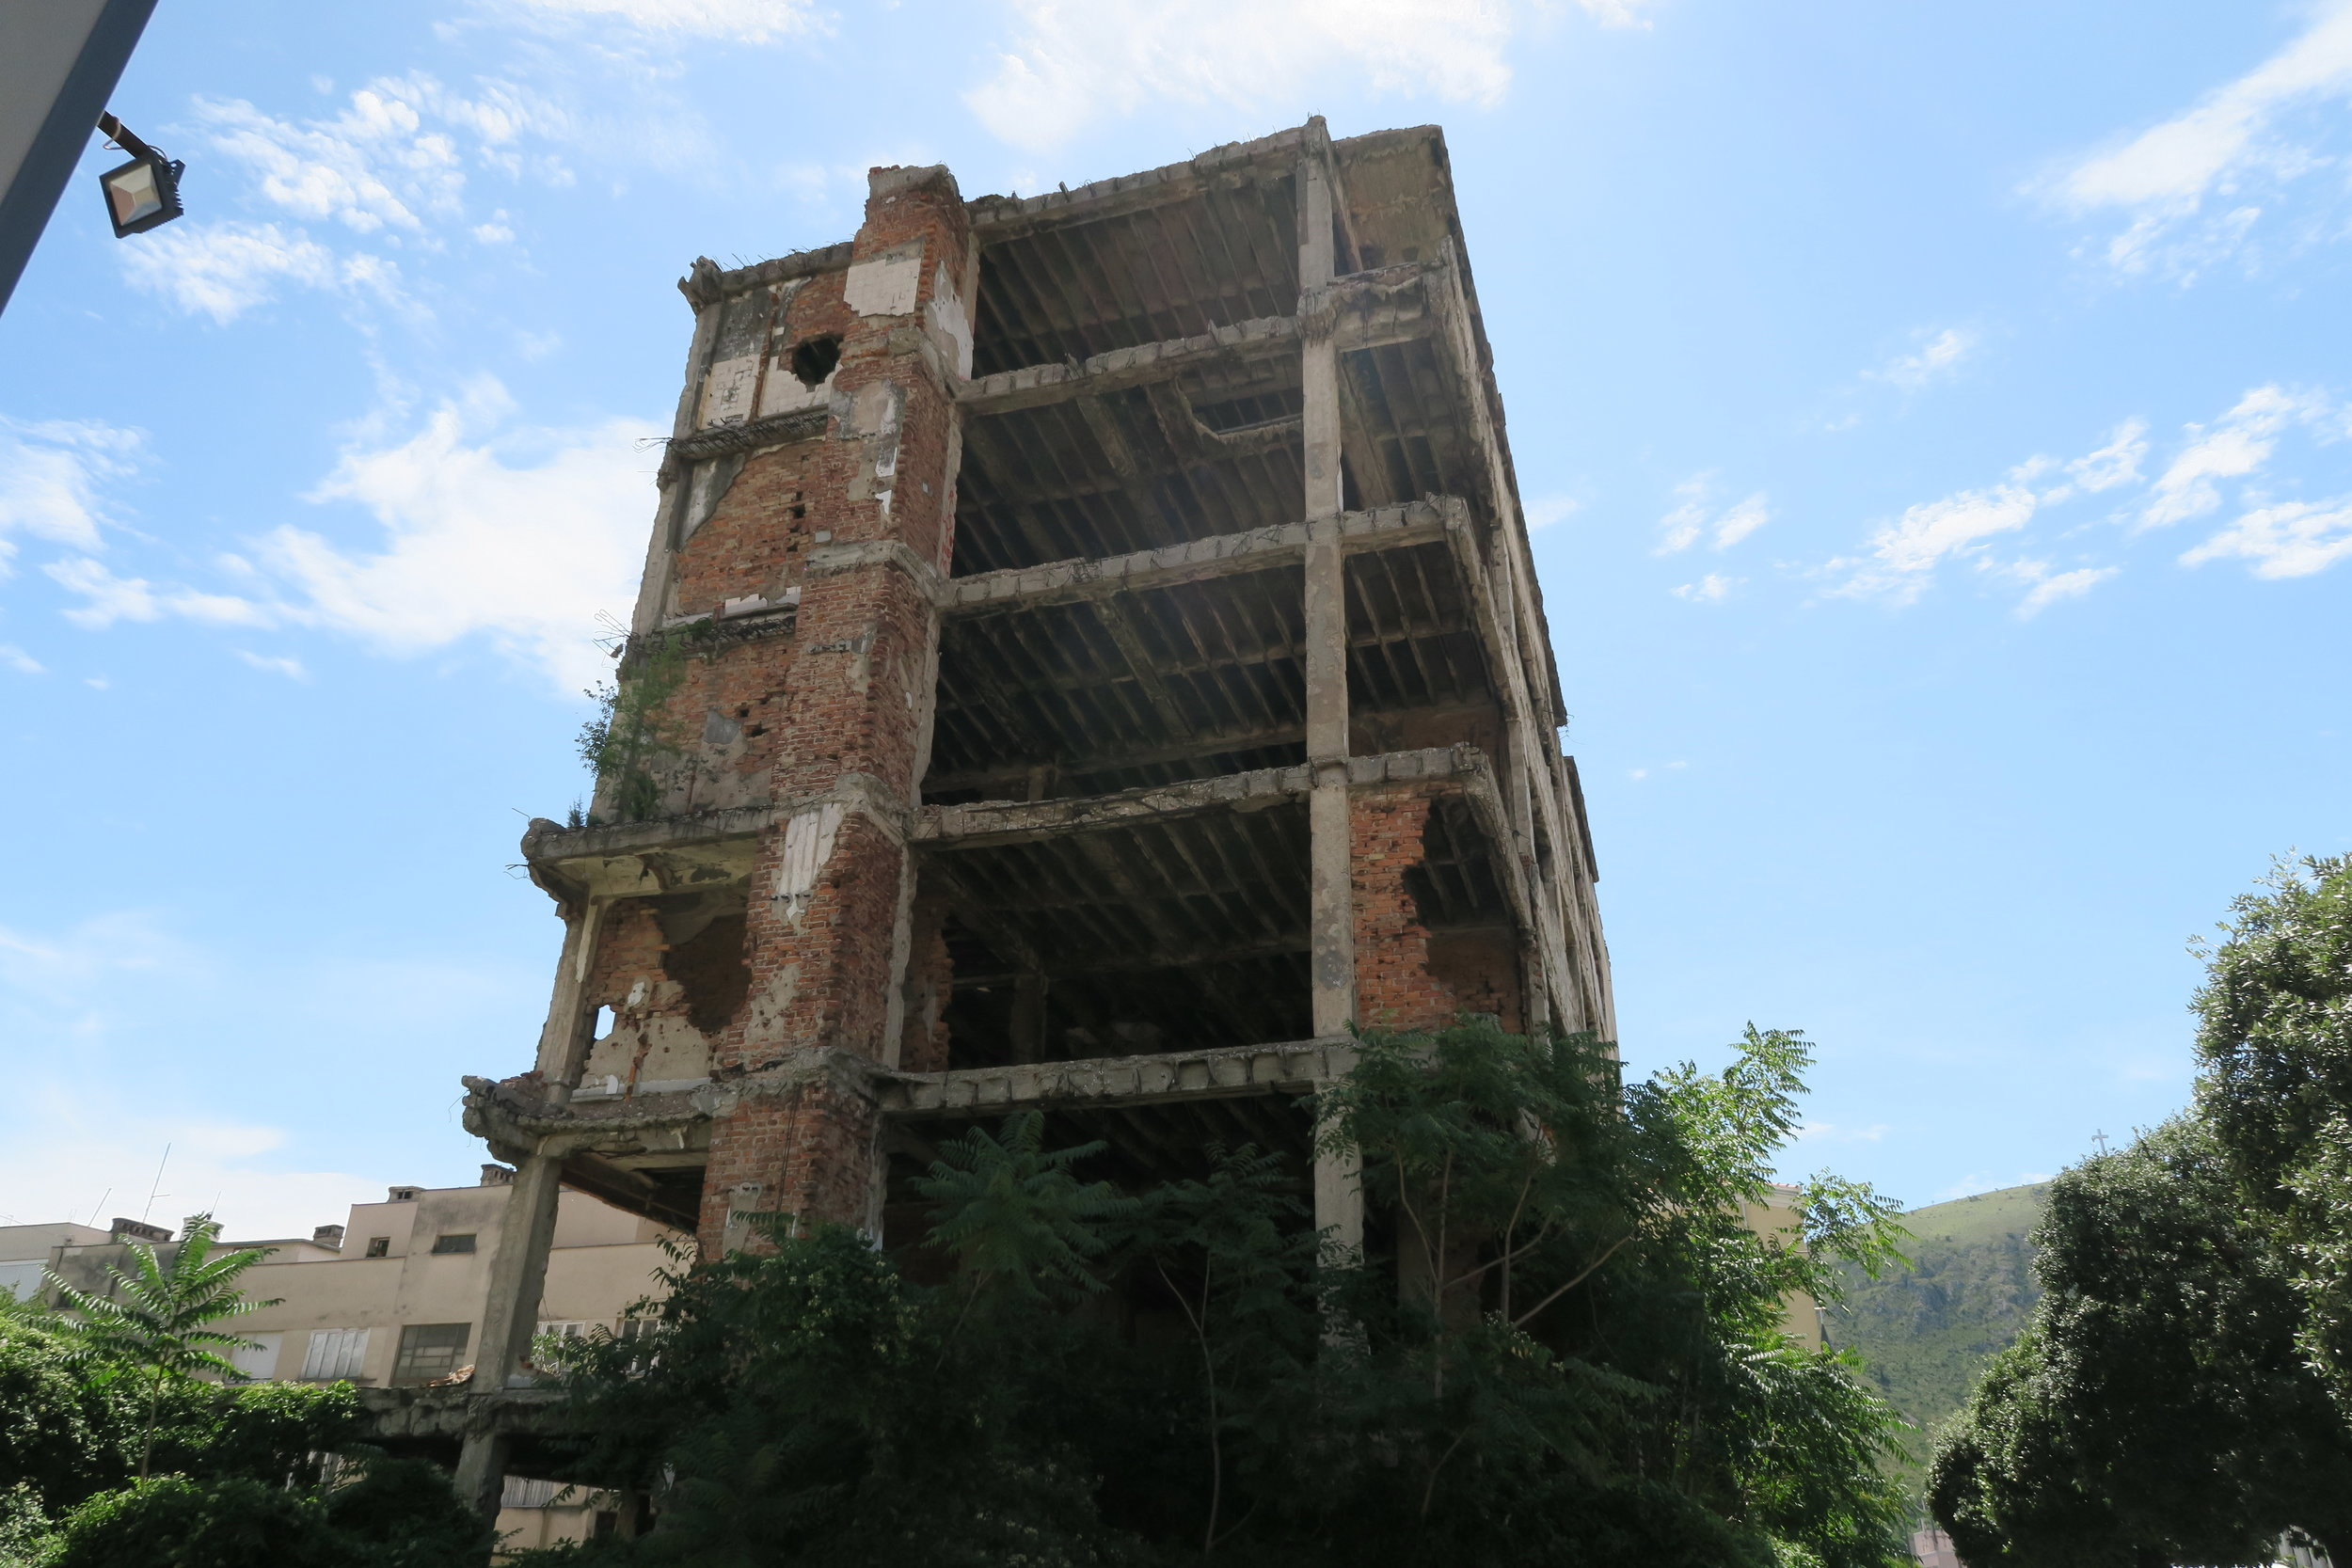 Shelled building in Mostar, one of many